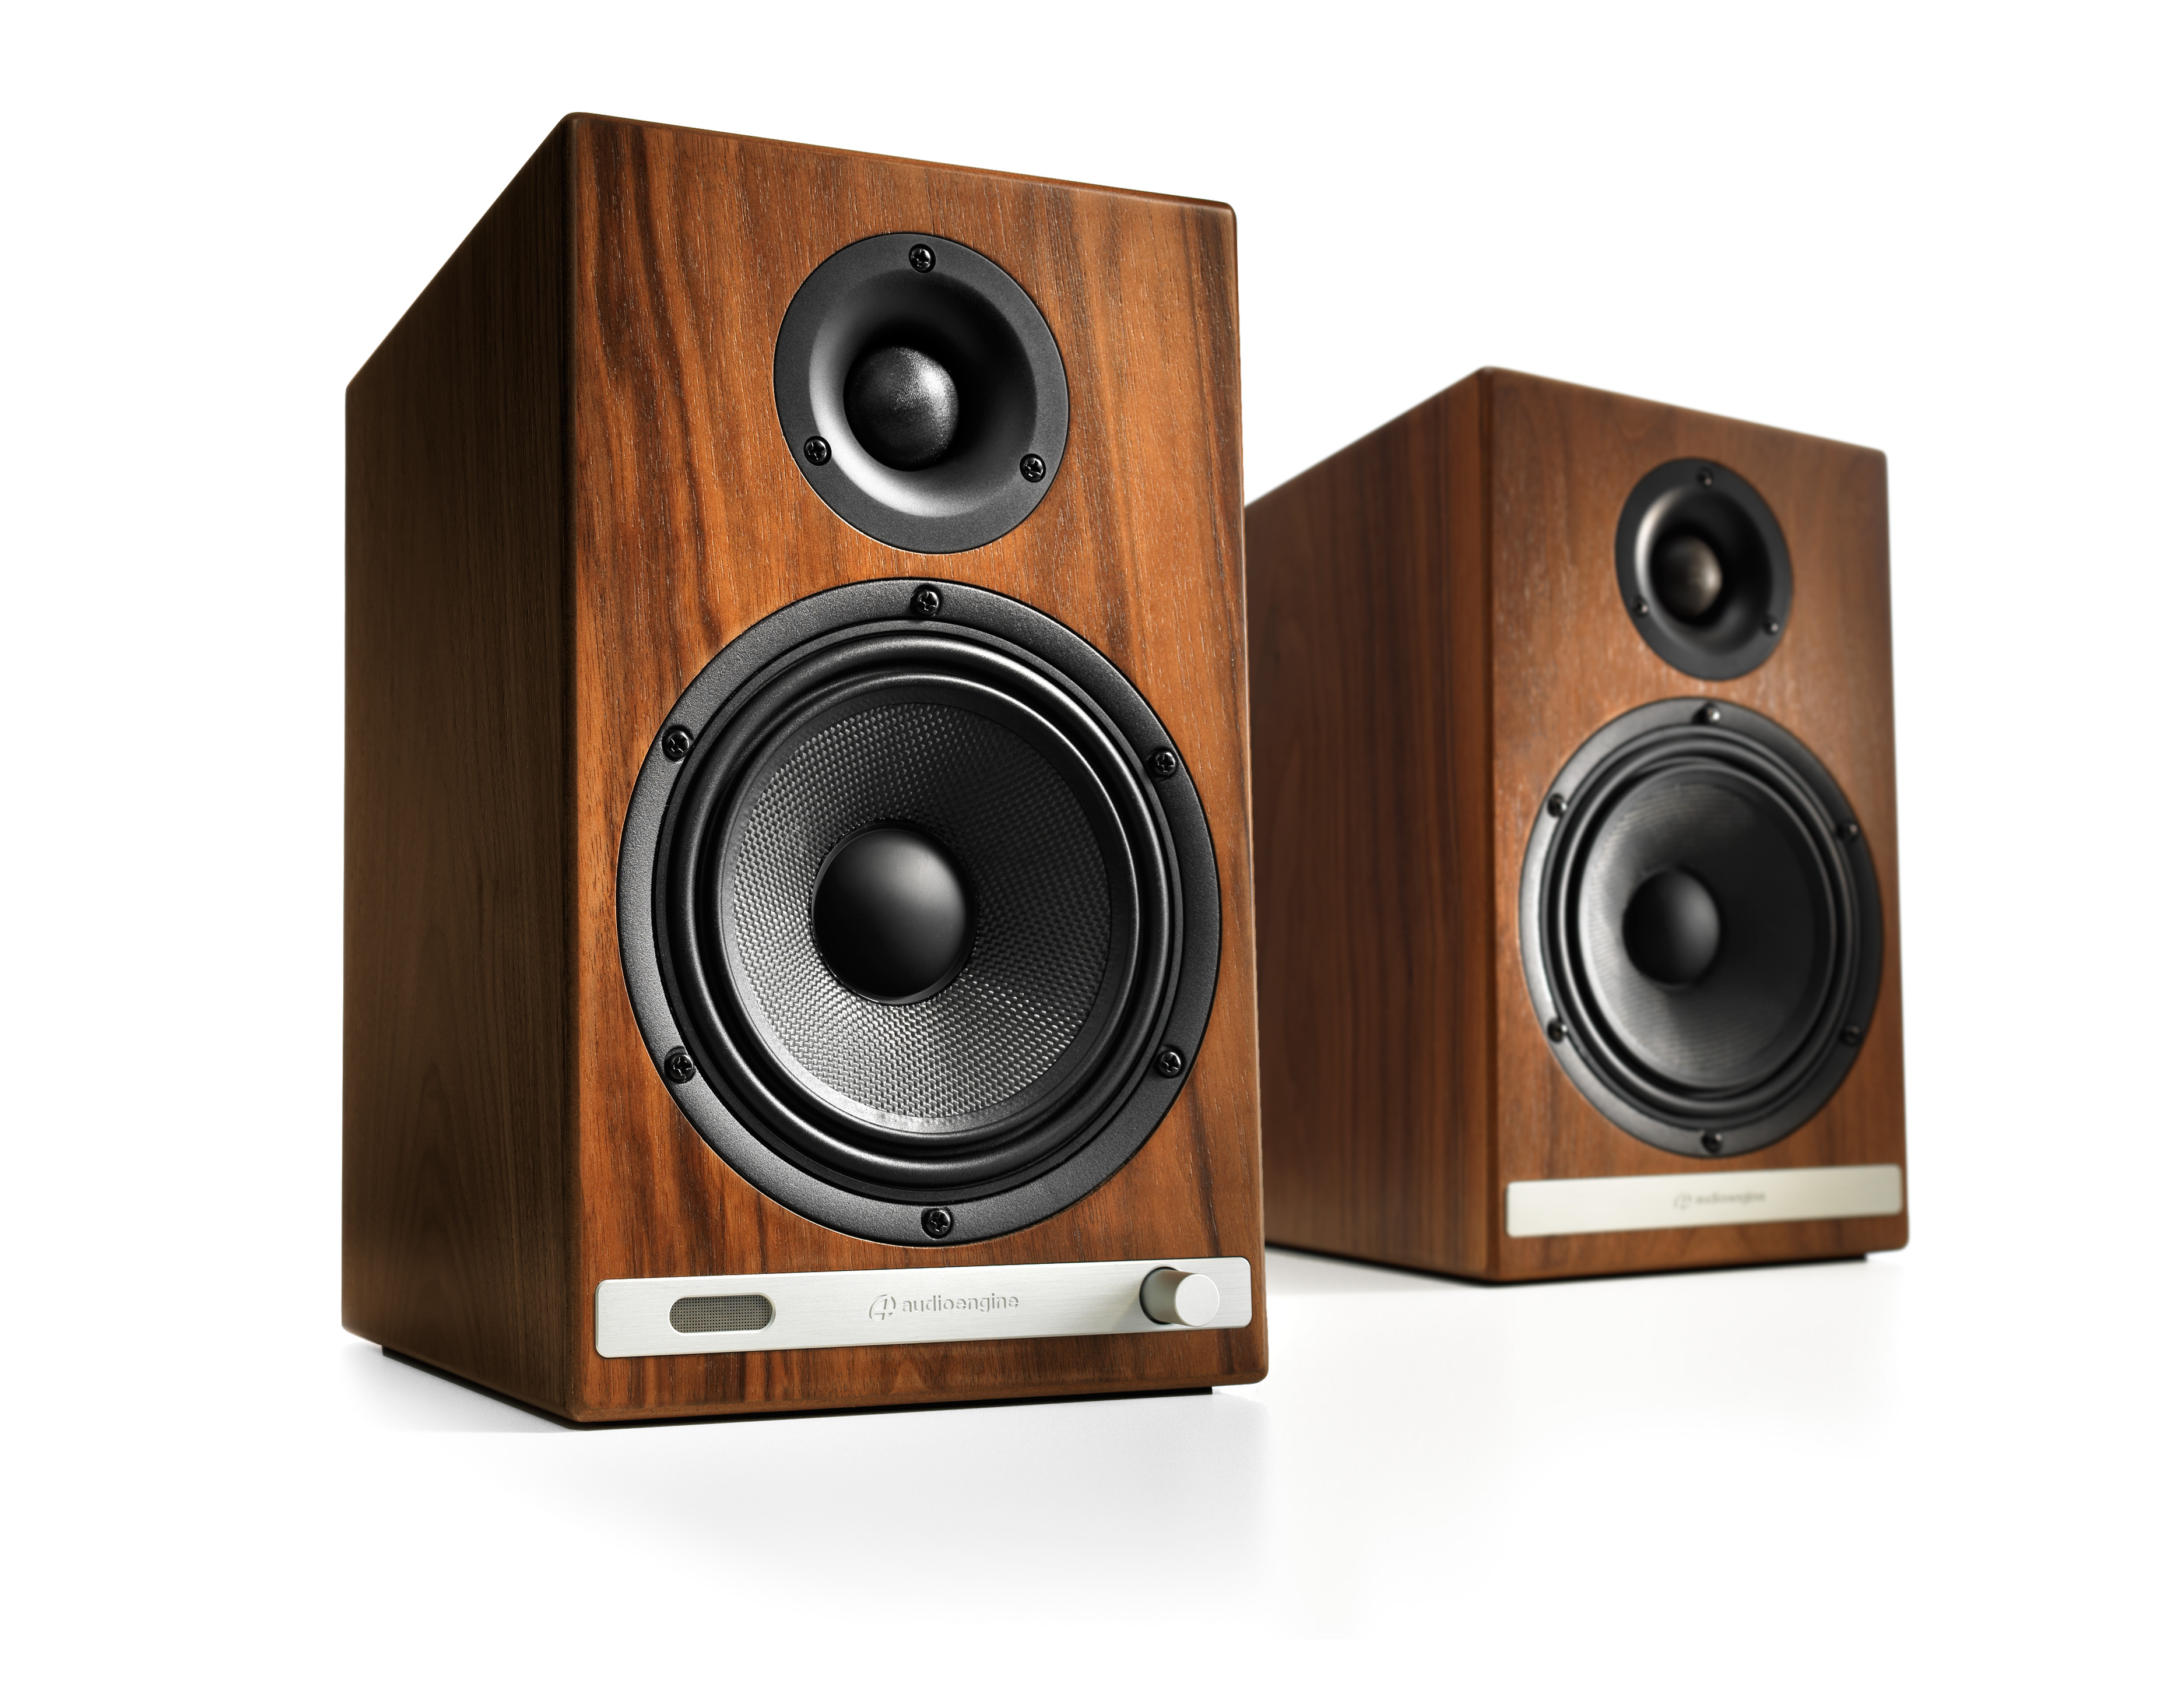 The Audioengine Hd6 A Statement Product That Sets The